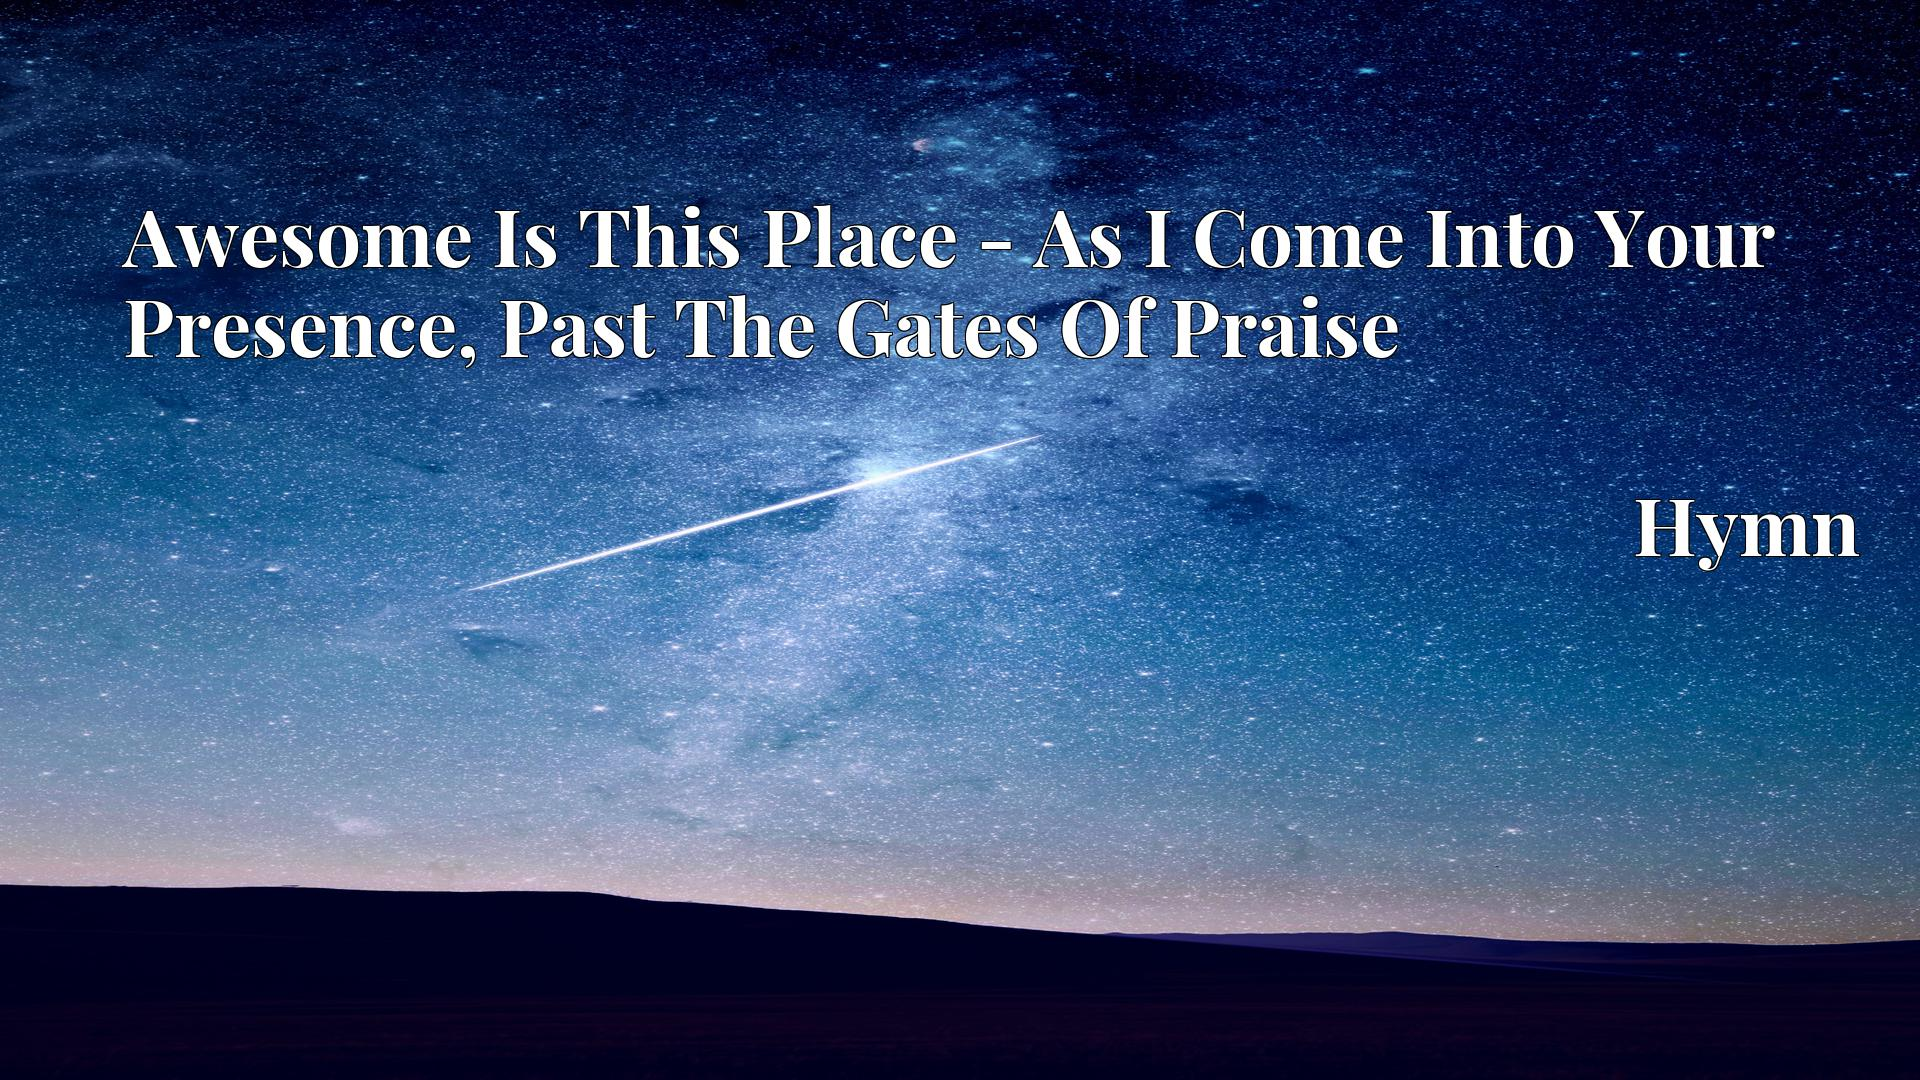 Awesome Is This Place - As I Come Into Your Presence, Past The Gates Of Praise - Hymn